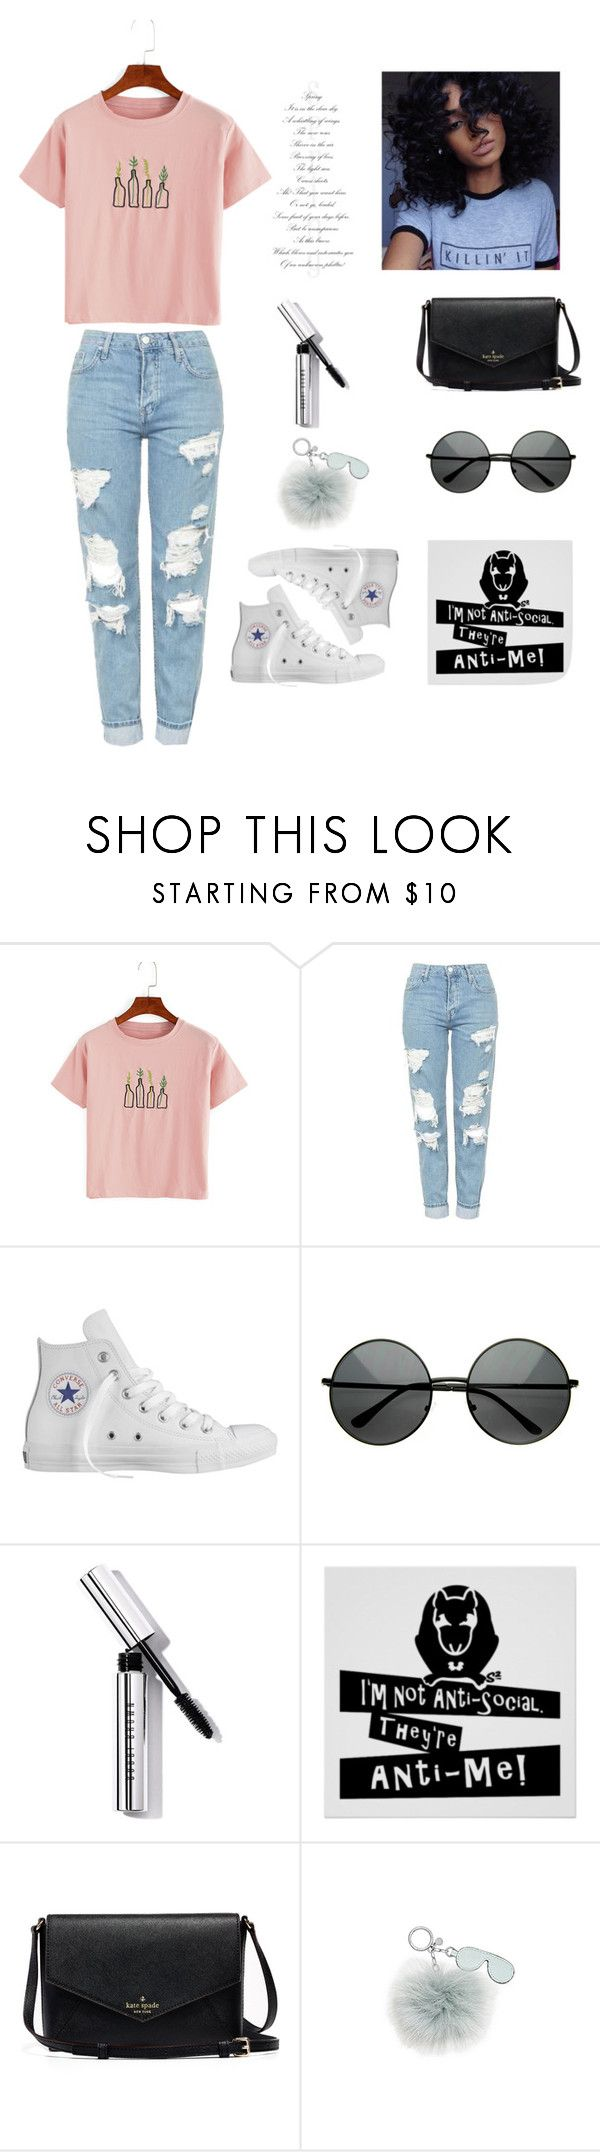 """"""""""" by fashiongurugirl16 ❤ liked on Polyvore featuring Topshop, Converse, Bobbi Brown Cosmetics and Michael Kors"""